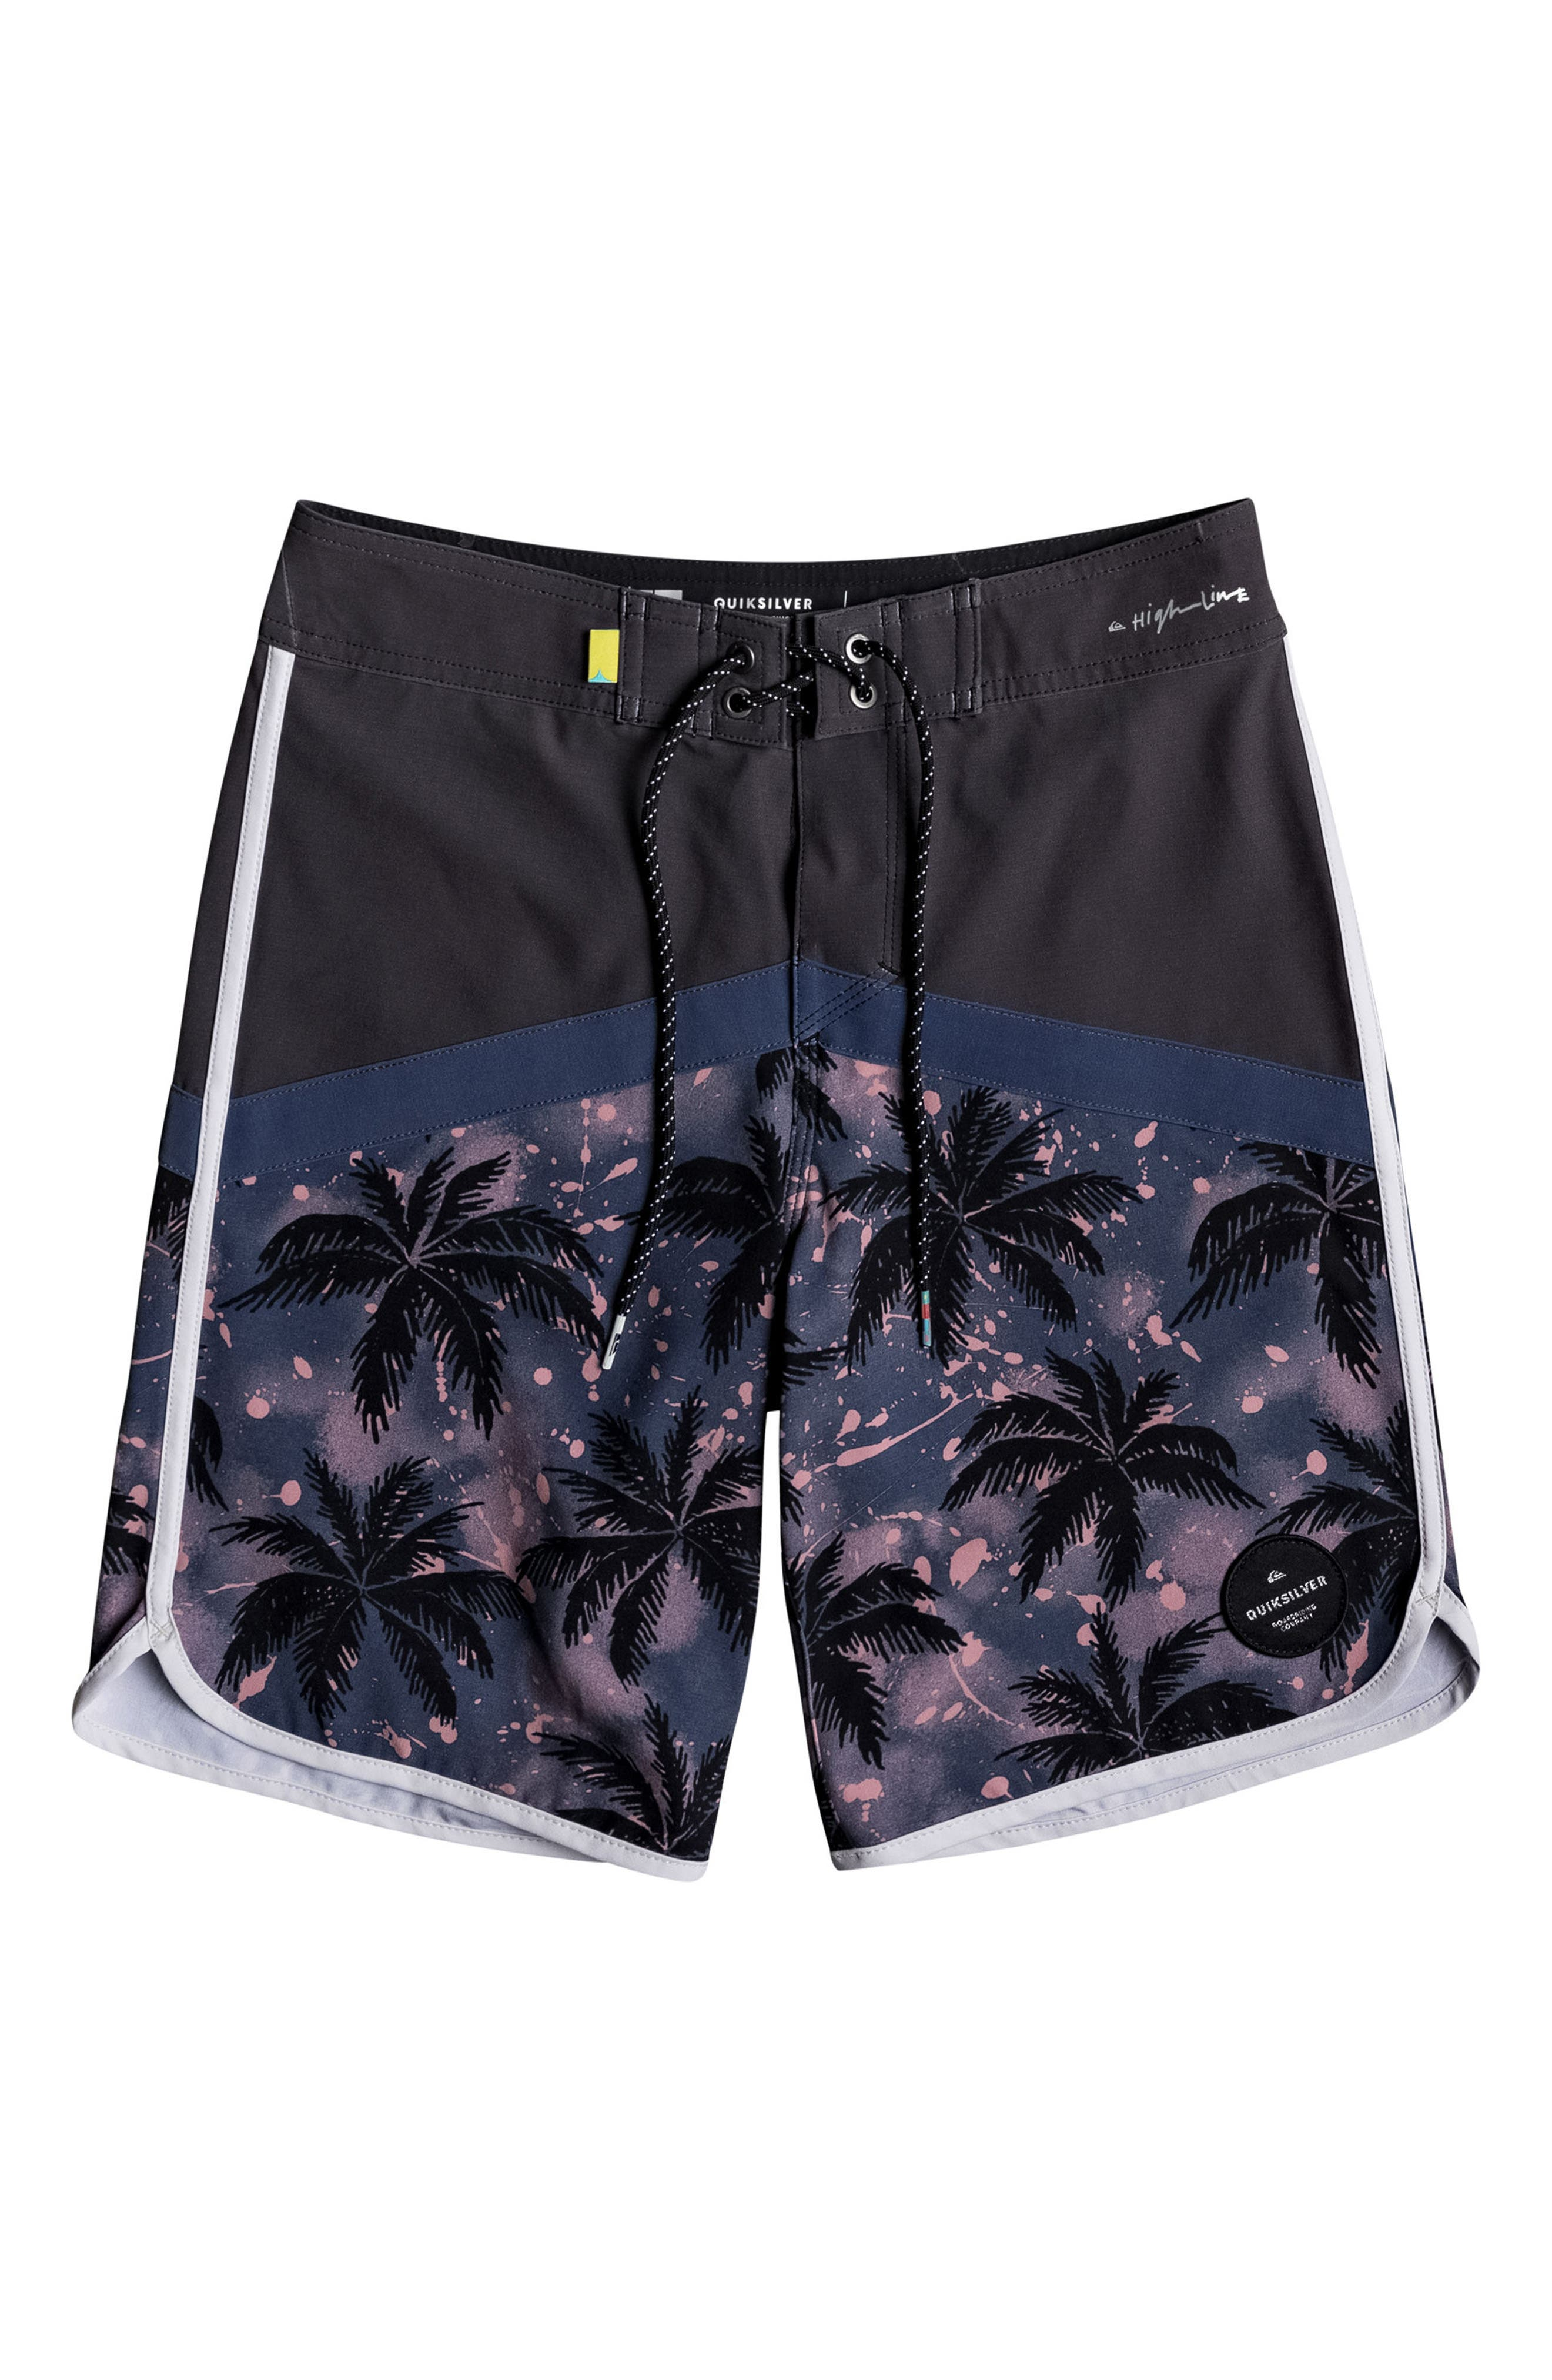 Alternate Image 1 Selected - Quiksilver Crypt Scallop Board Shorts (Big Boys)